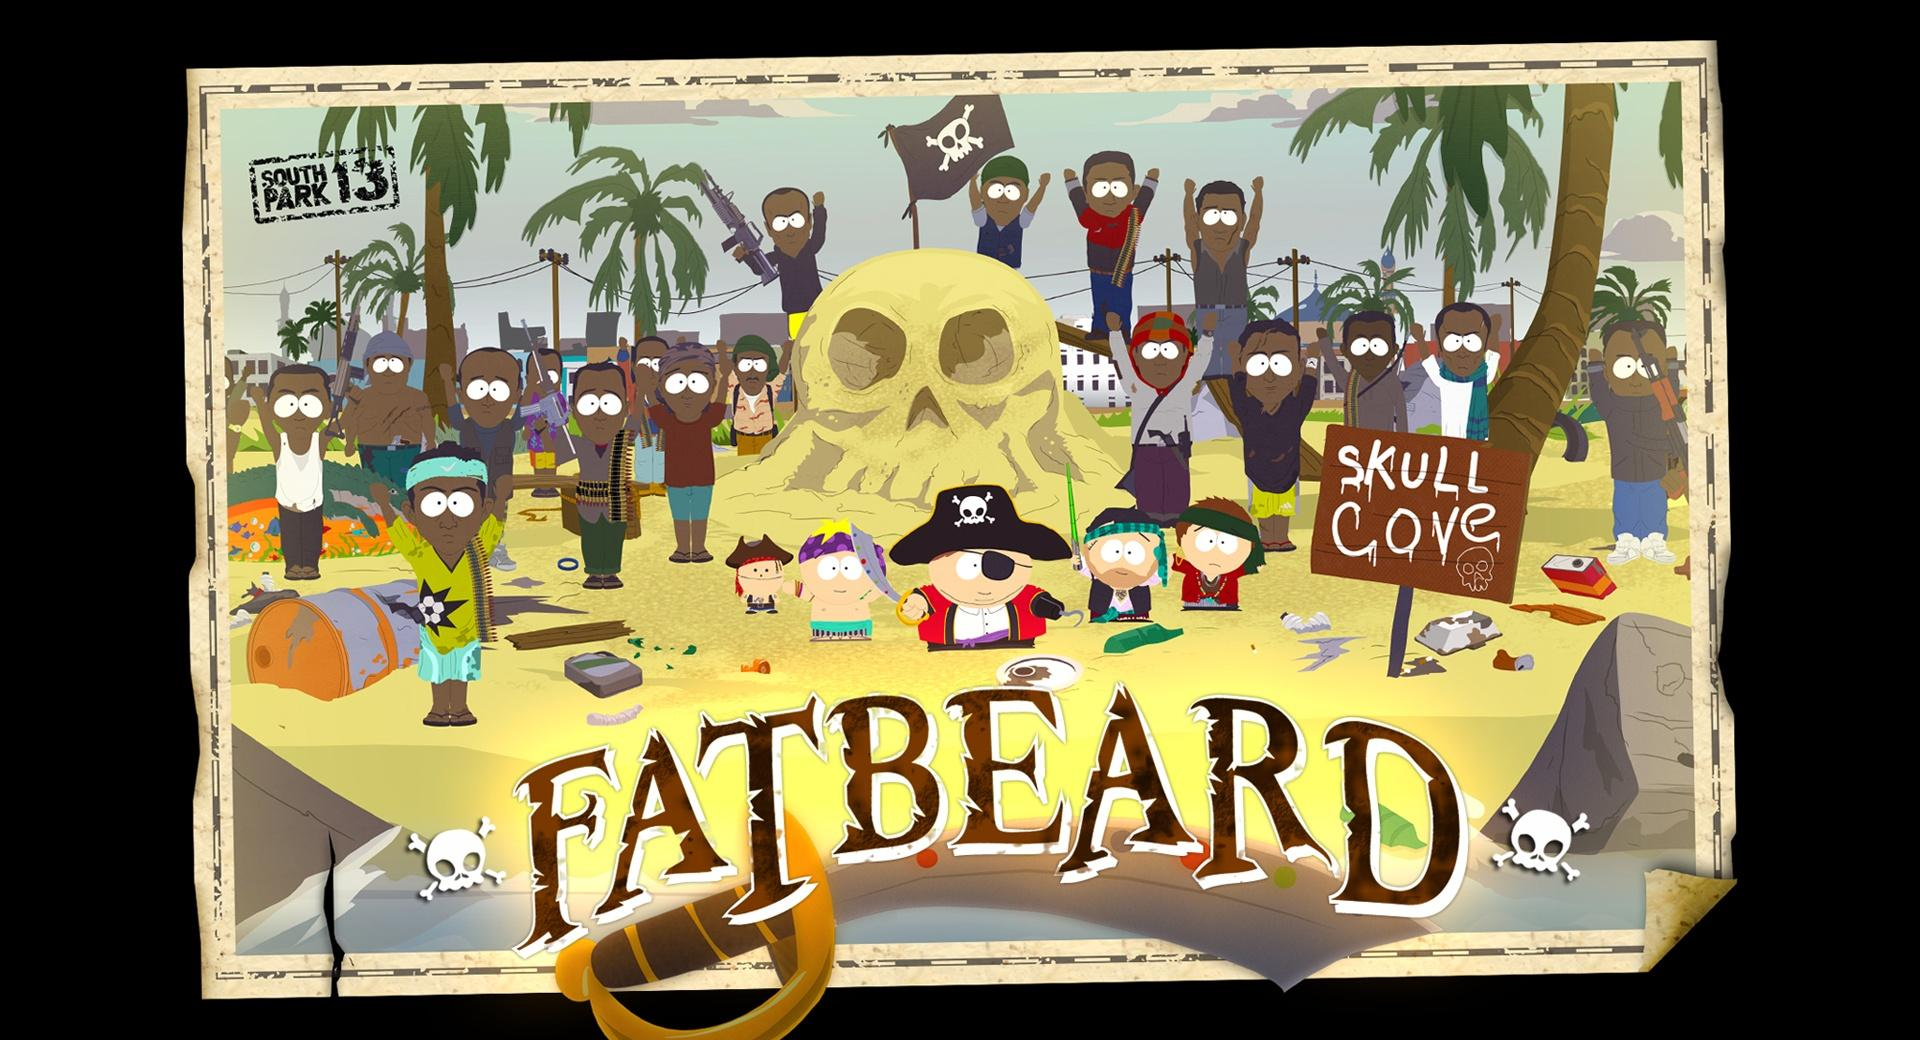 South Park - Fatbeard wallpapers HD quality